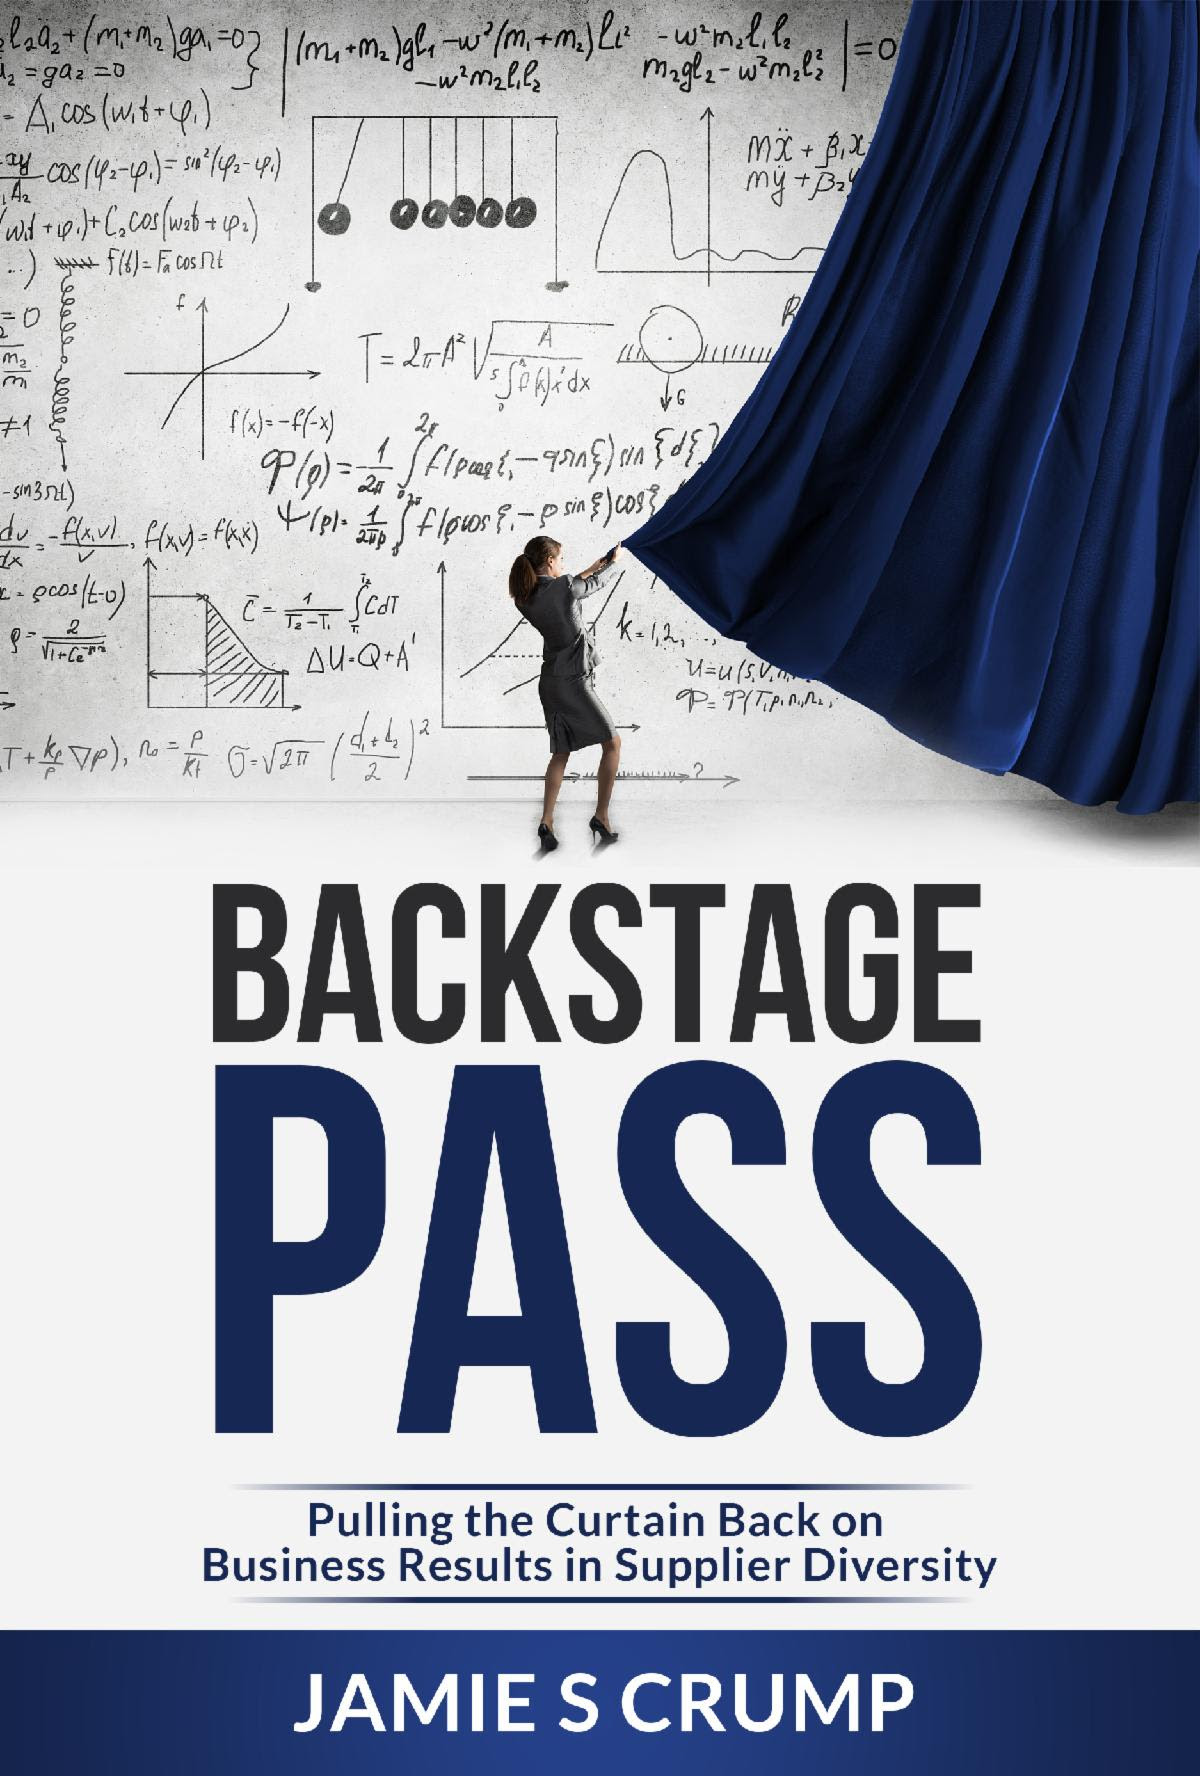 jamie-crump-backstage-pass-pulling-curtain-back-business-supplier-diversity